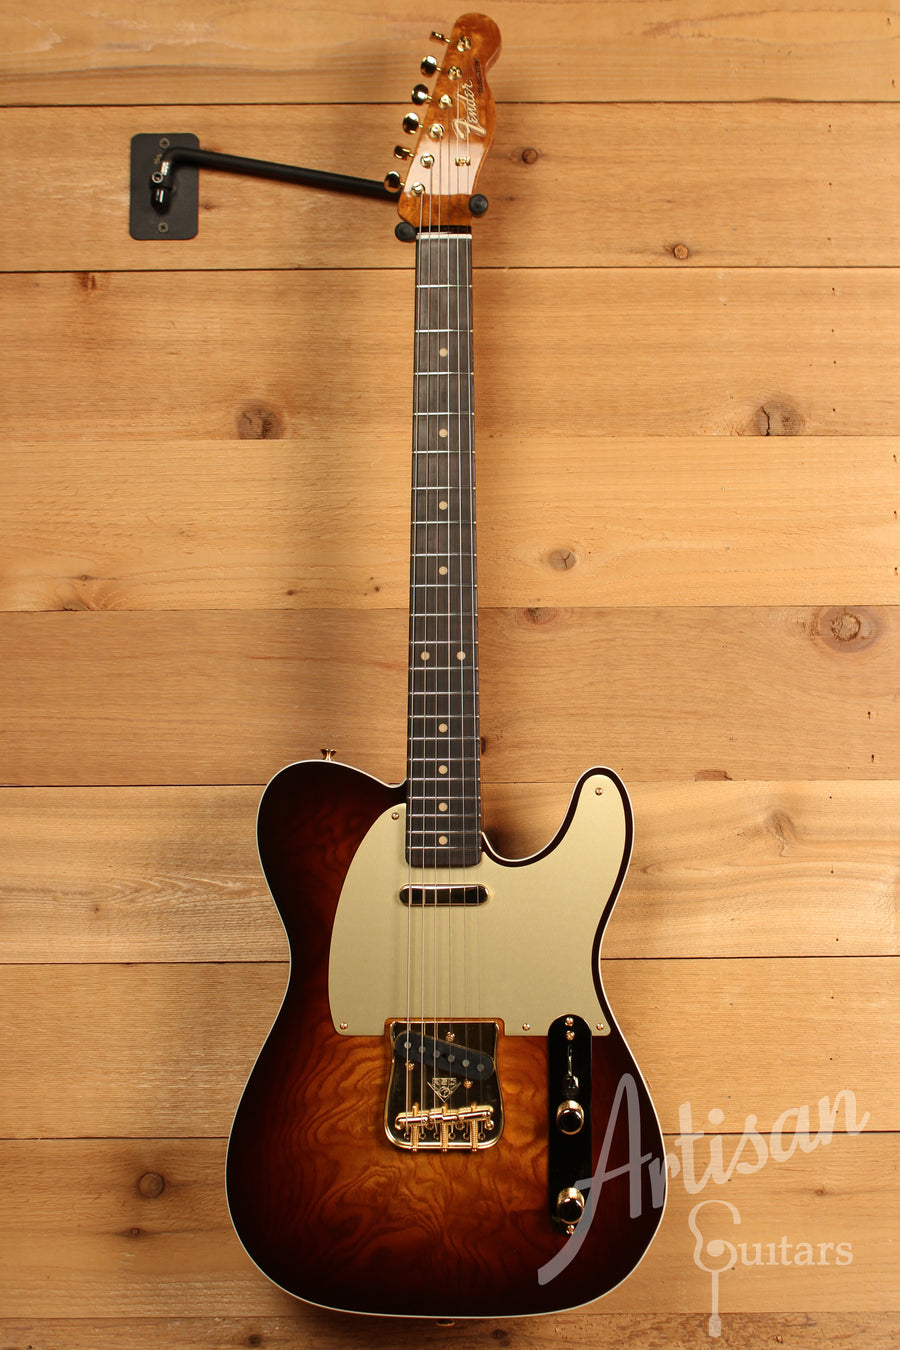 Fender Custom Shop Artisan Collection Telecaster Tamo Ash with Chocolate Fade Finish ID-11158